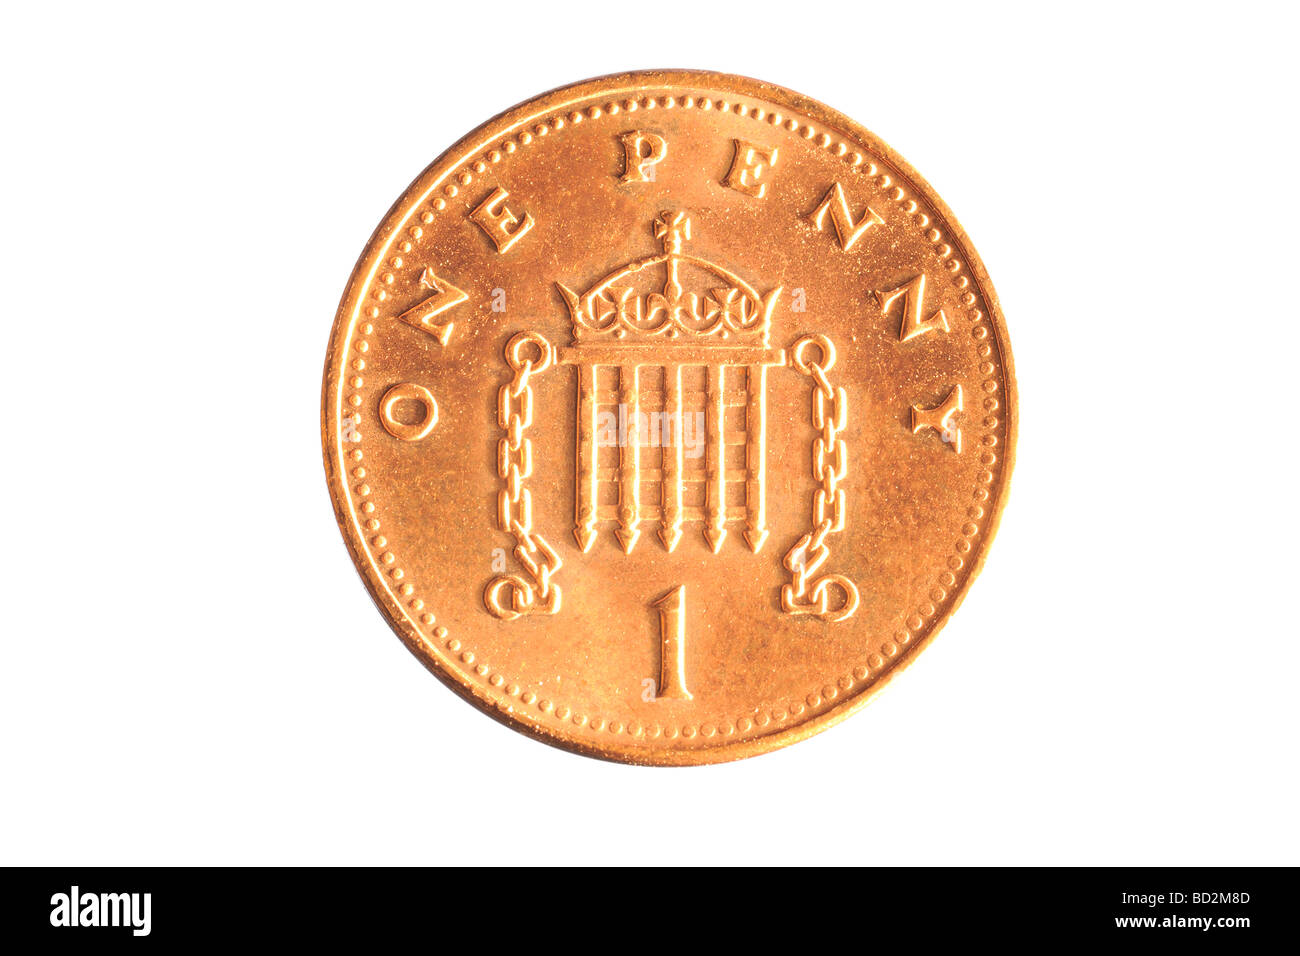 one penny coin - Stock Image